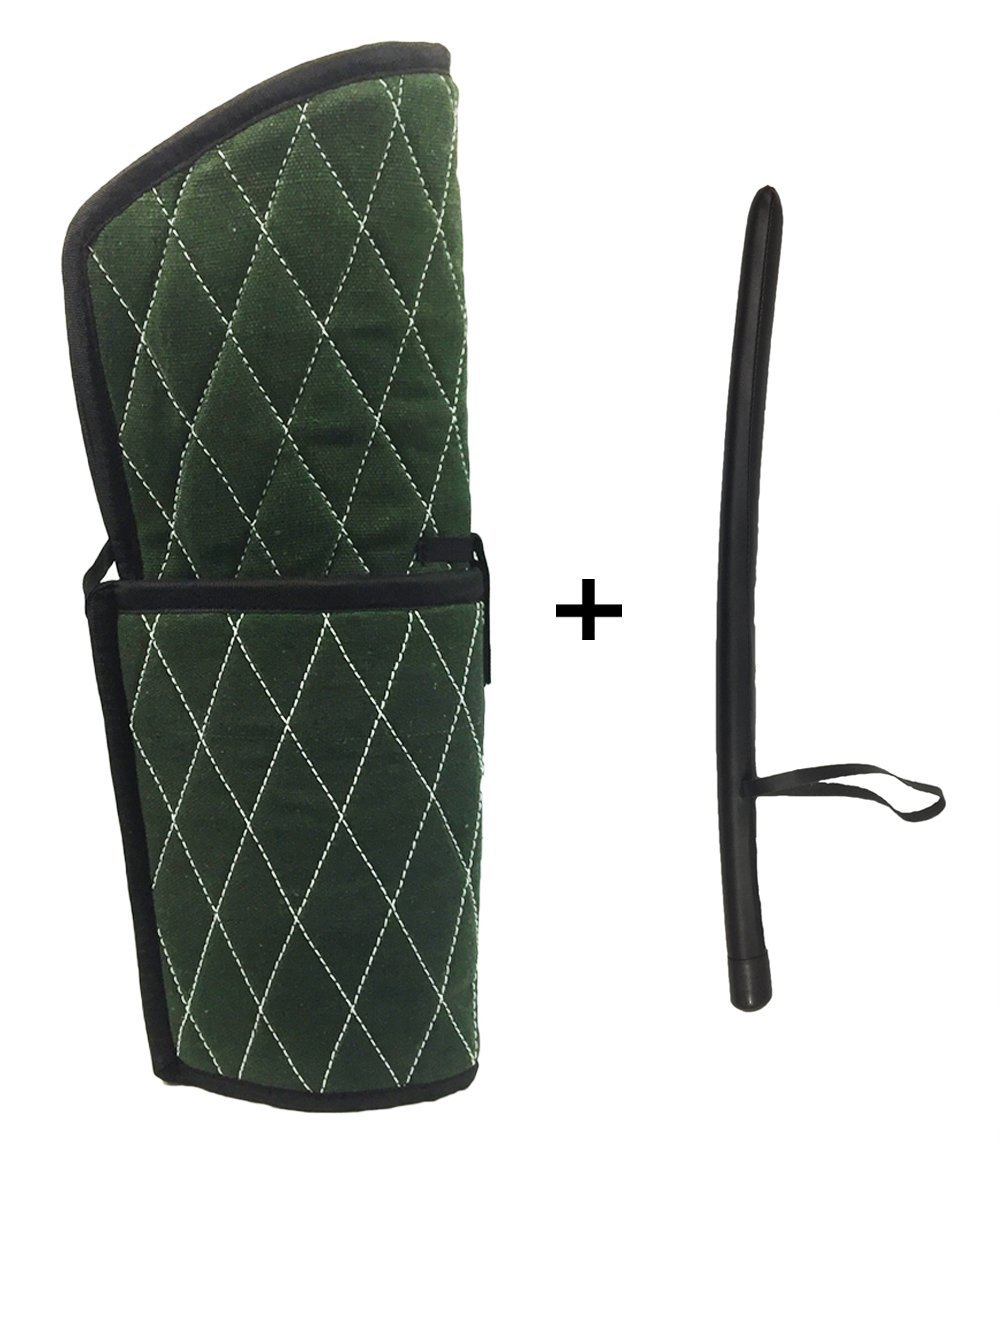 Dog Training Tools Set Including Arm Protection Bite Sleeve and Agitation Controlling Stick Whip